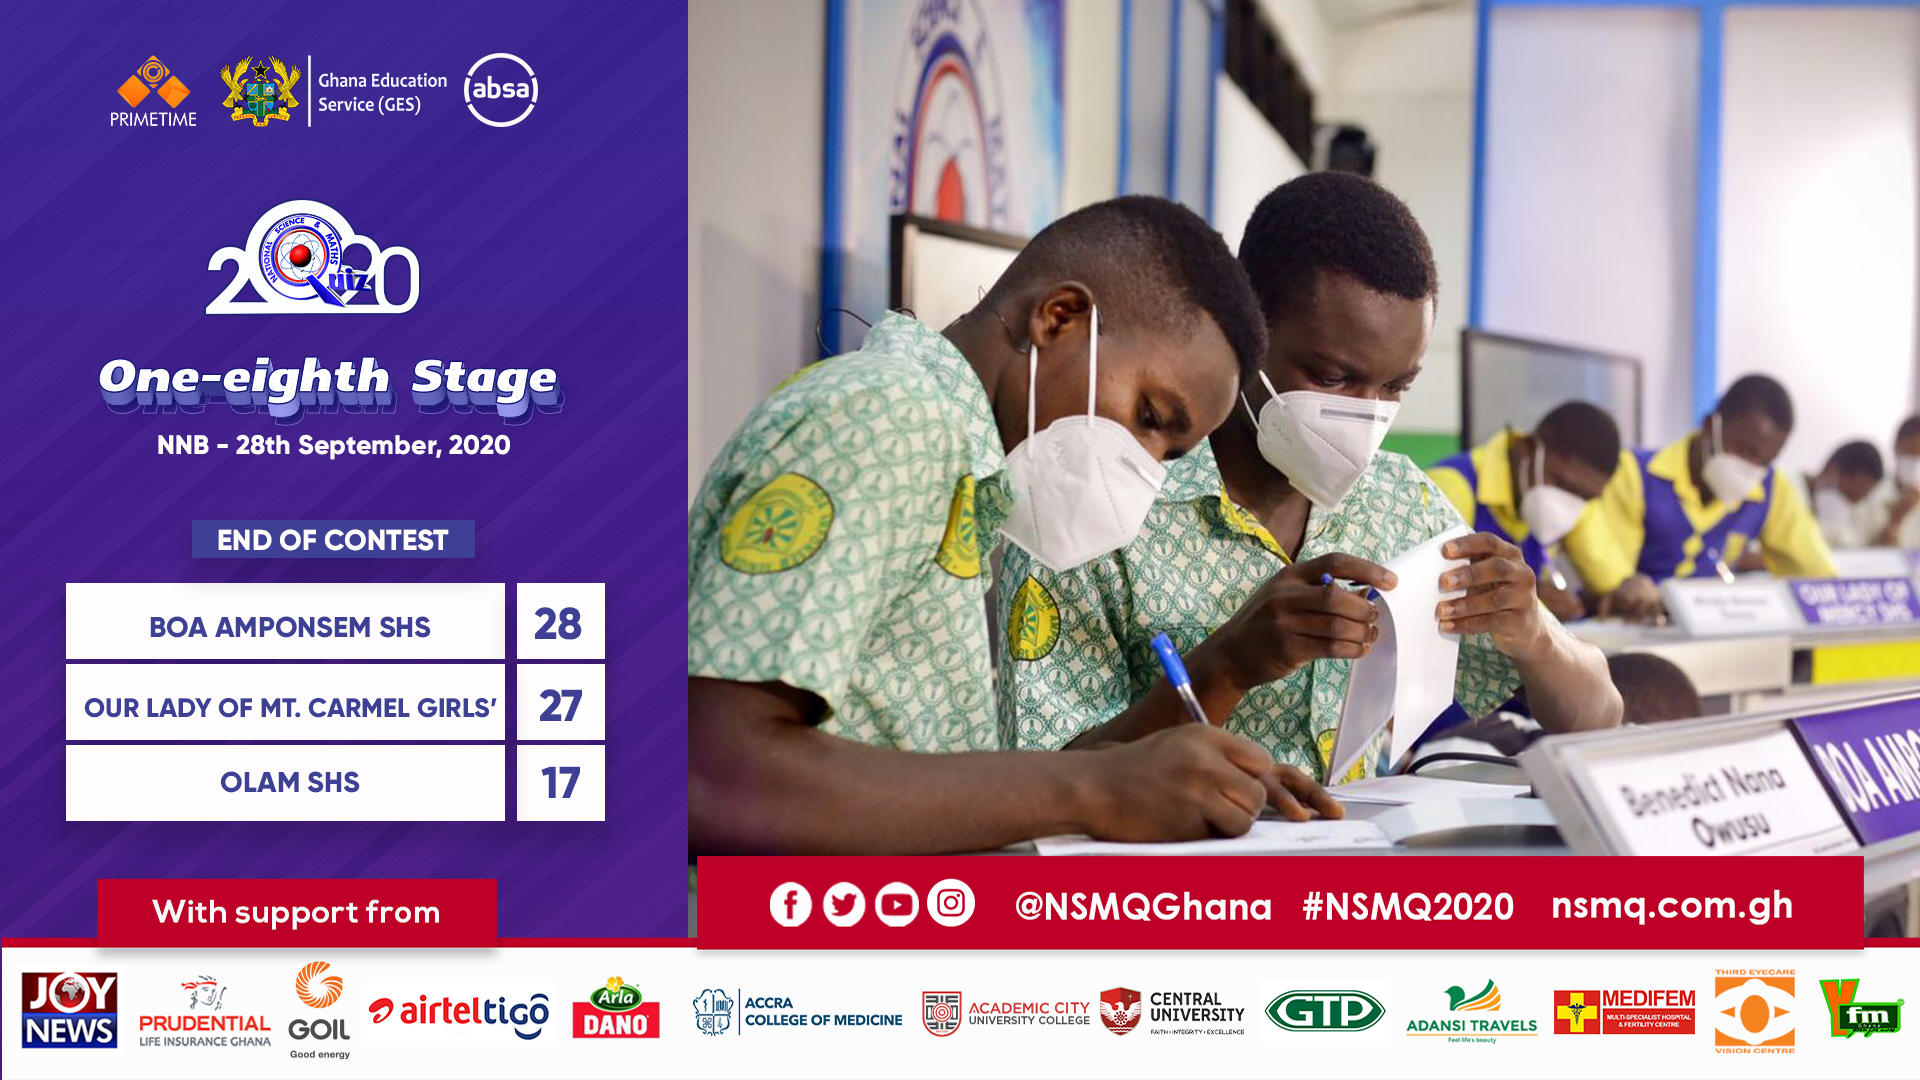 2020NSMQ: Boa Amponsem SHS makes a miraculous win to qualify to the Quarterfinal Stage 3